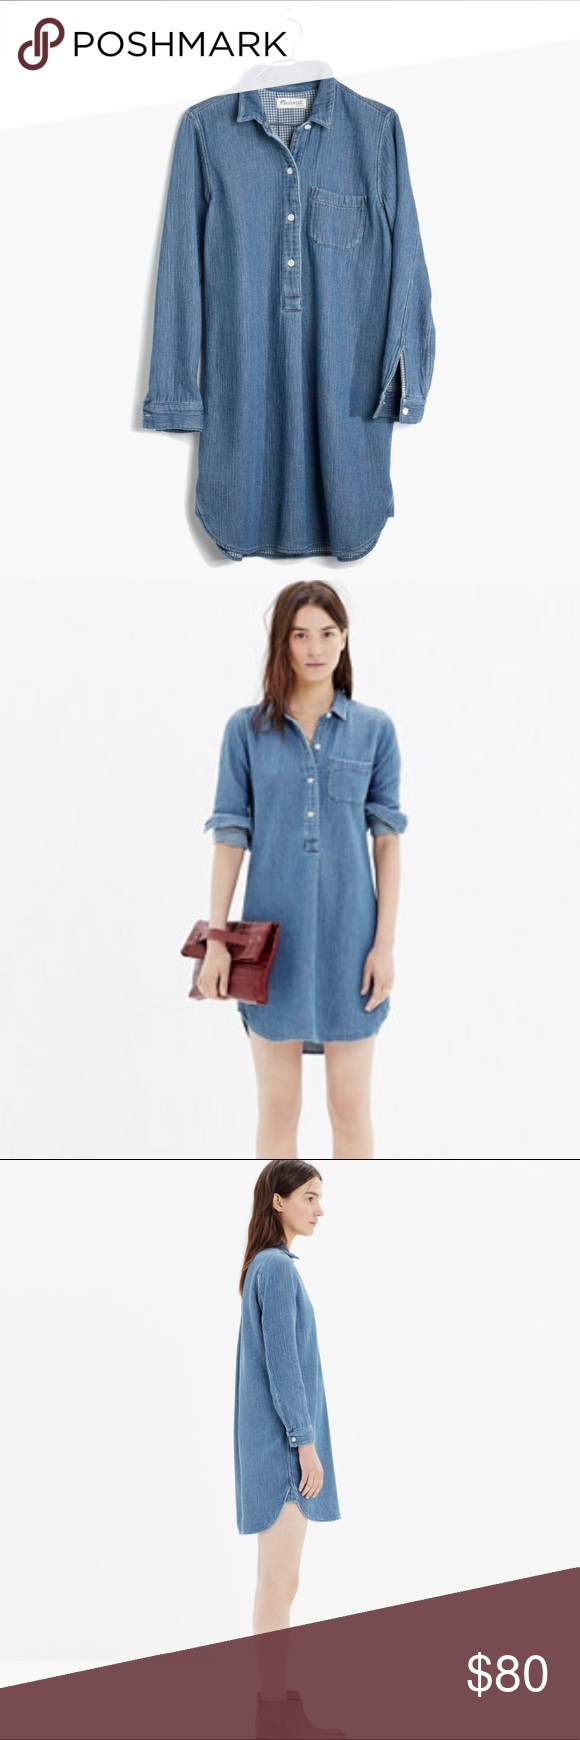 a71660647d Madewell chambray popover shirtdress Excellent condition